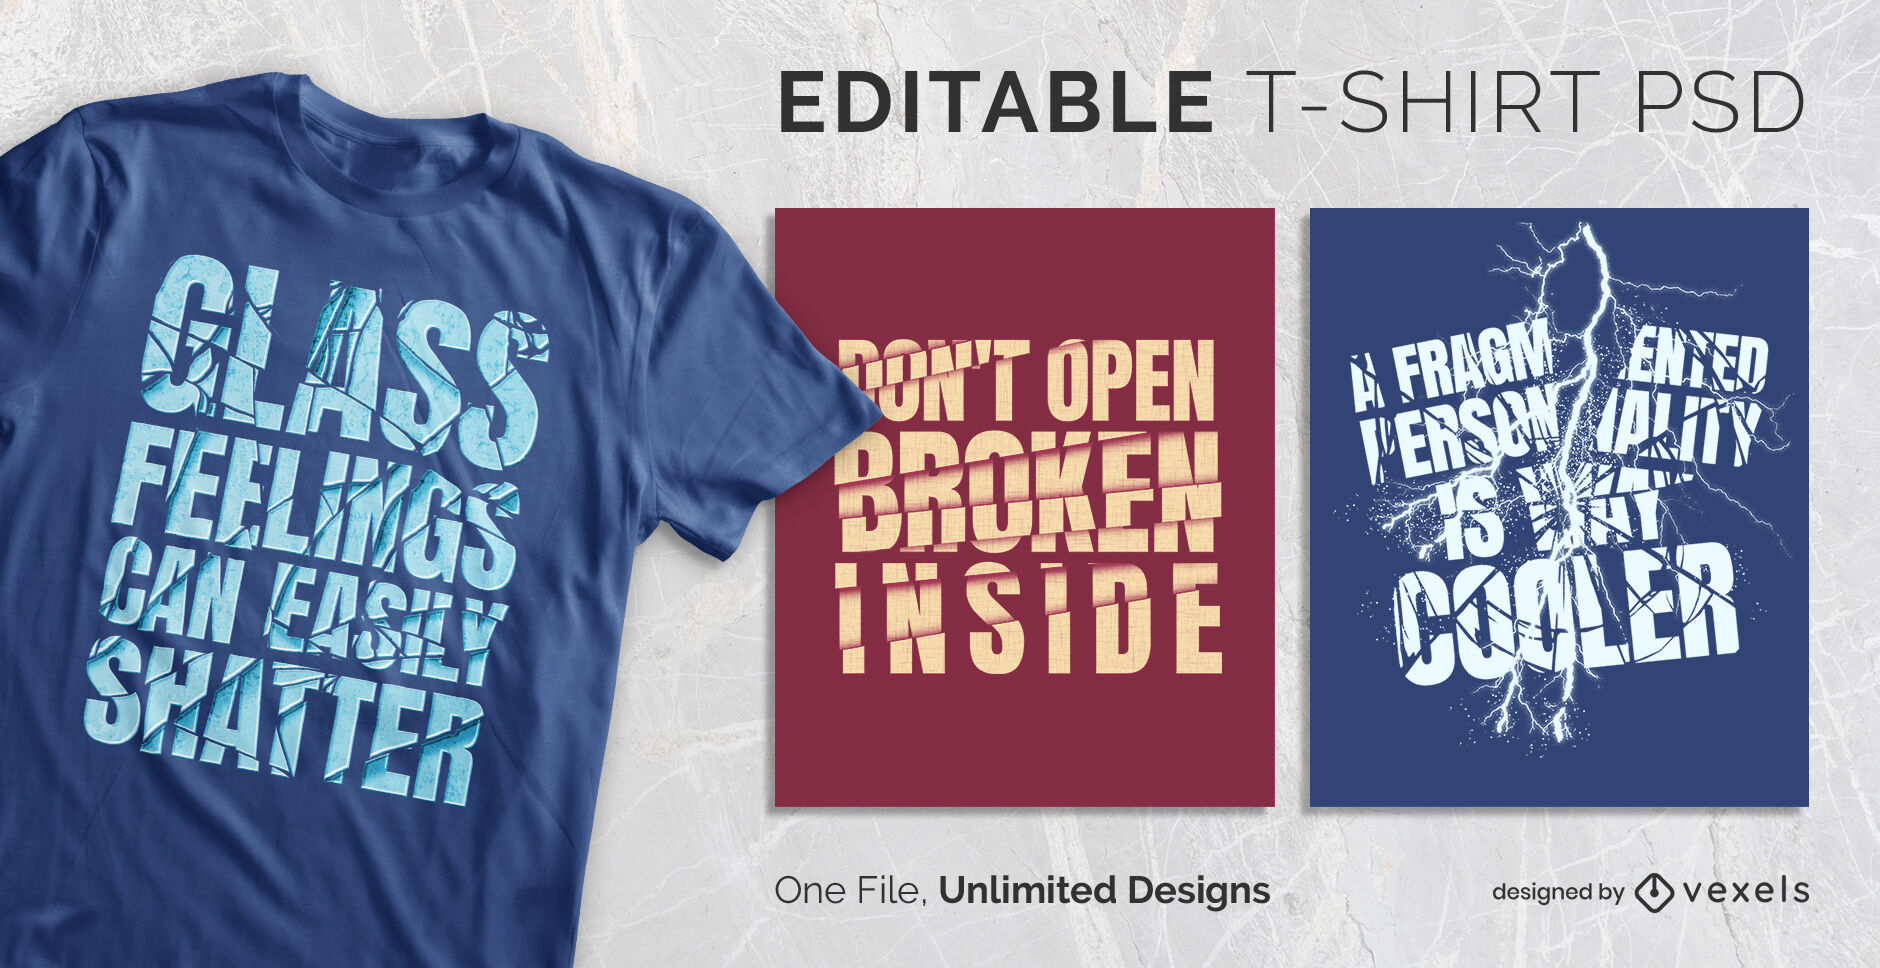 Shattered glass scalable psd t-shirt design